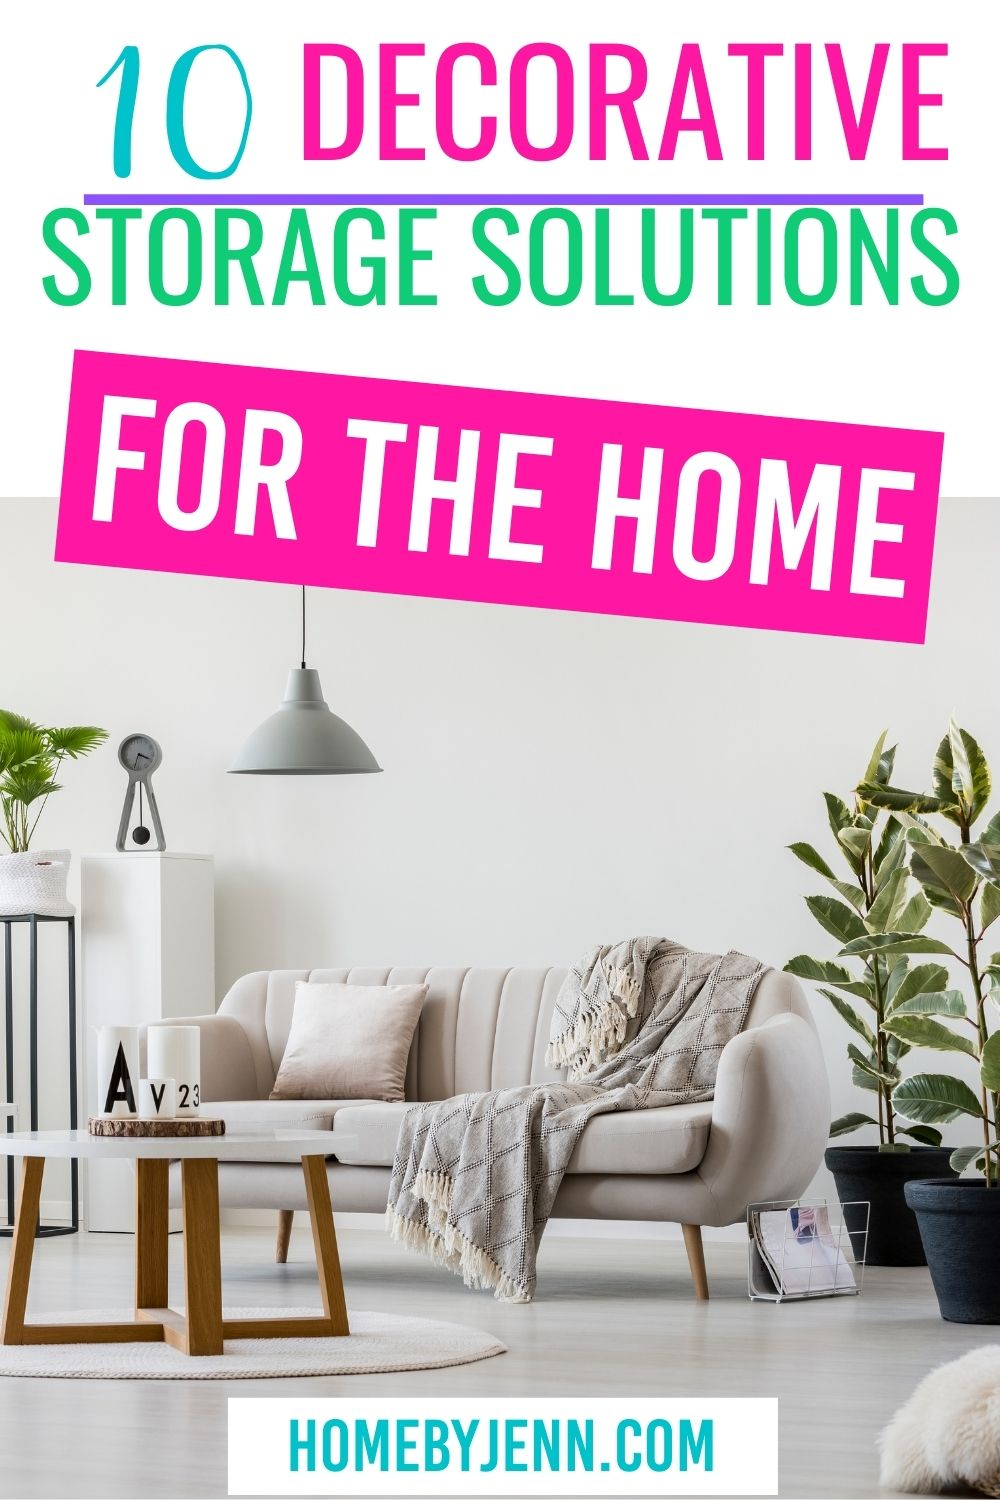 Add extra storage to your home with some decorative storage solutions. When organizing your home improve your decor by adding in some storage ideas that match your home decor. via @homebyjenn